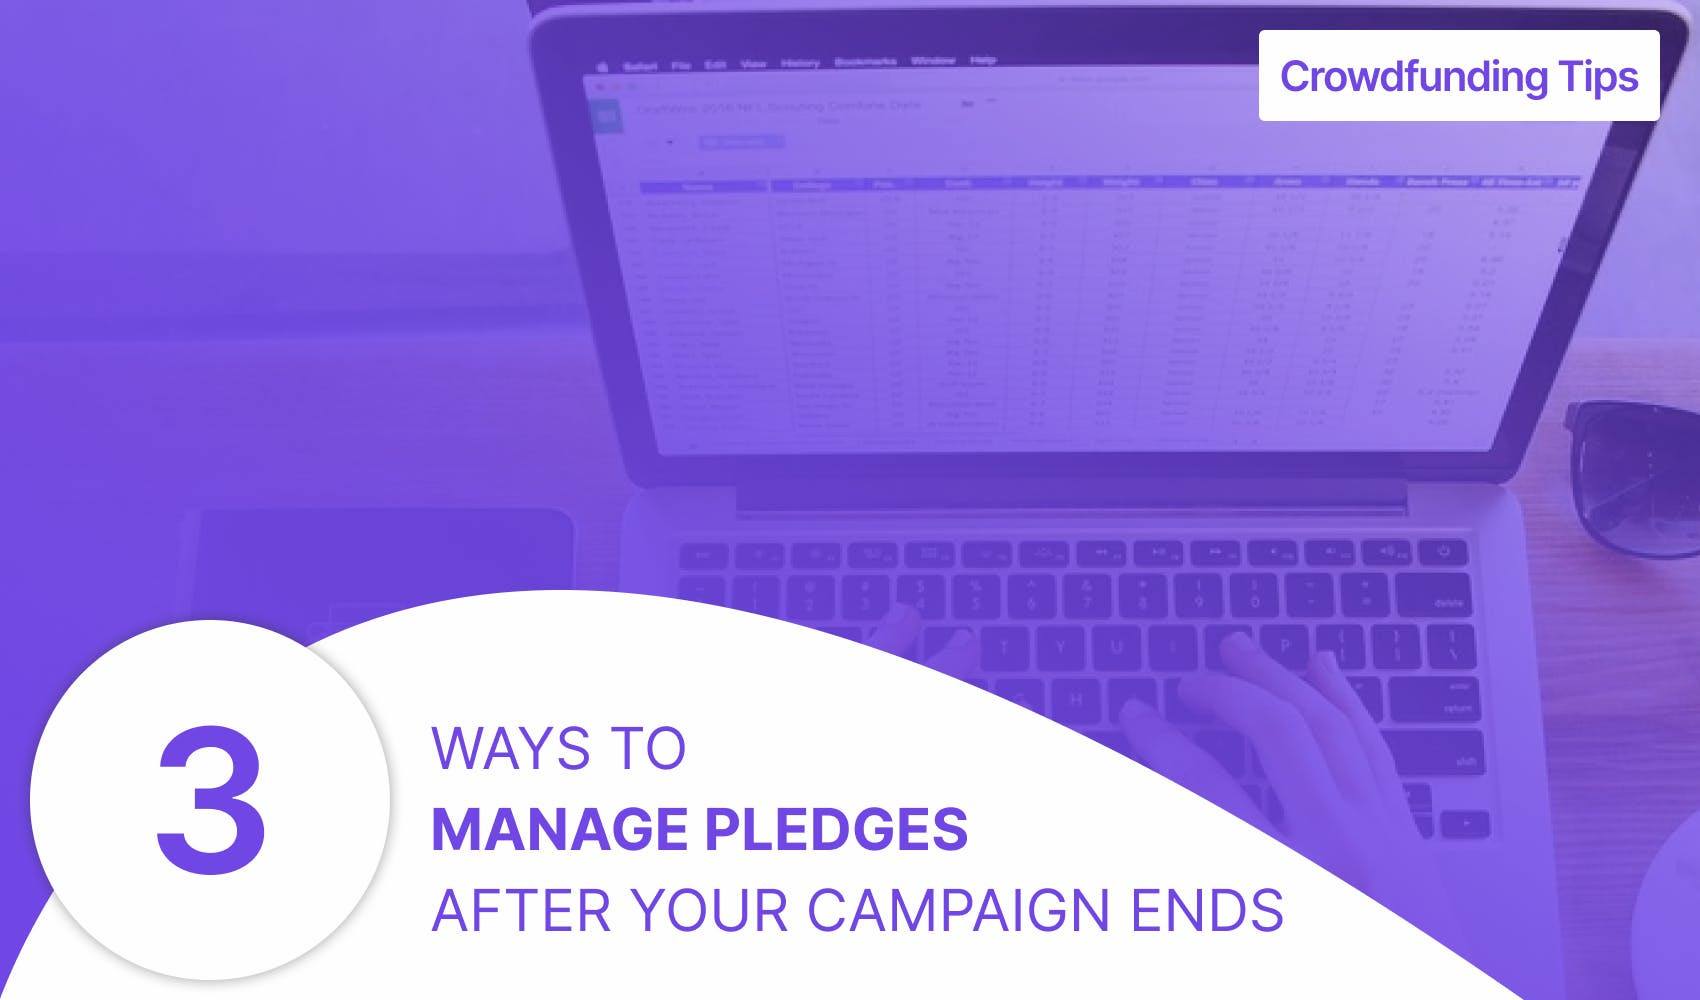 3 ways to manage pledges after your campaign ends